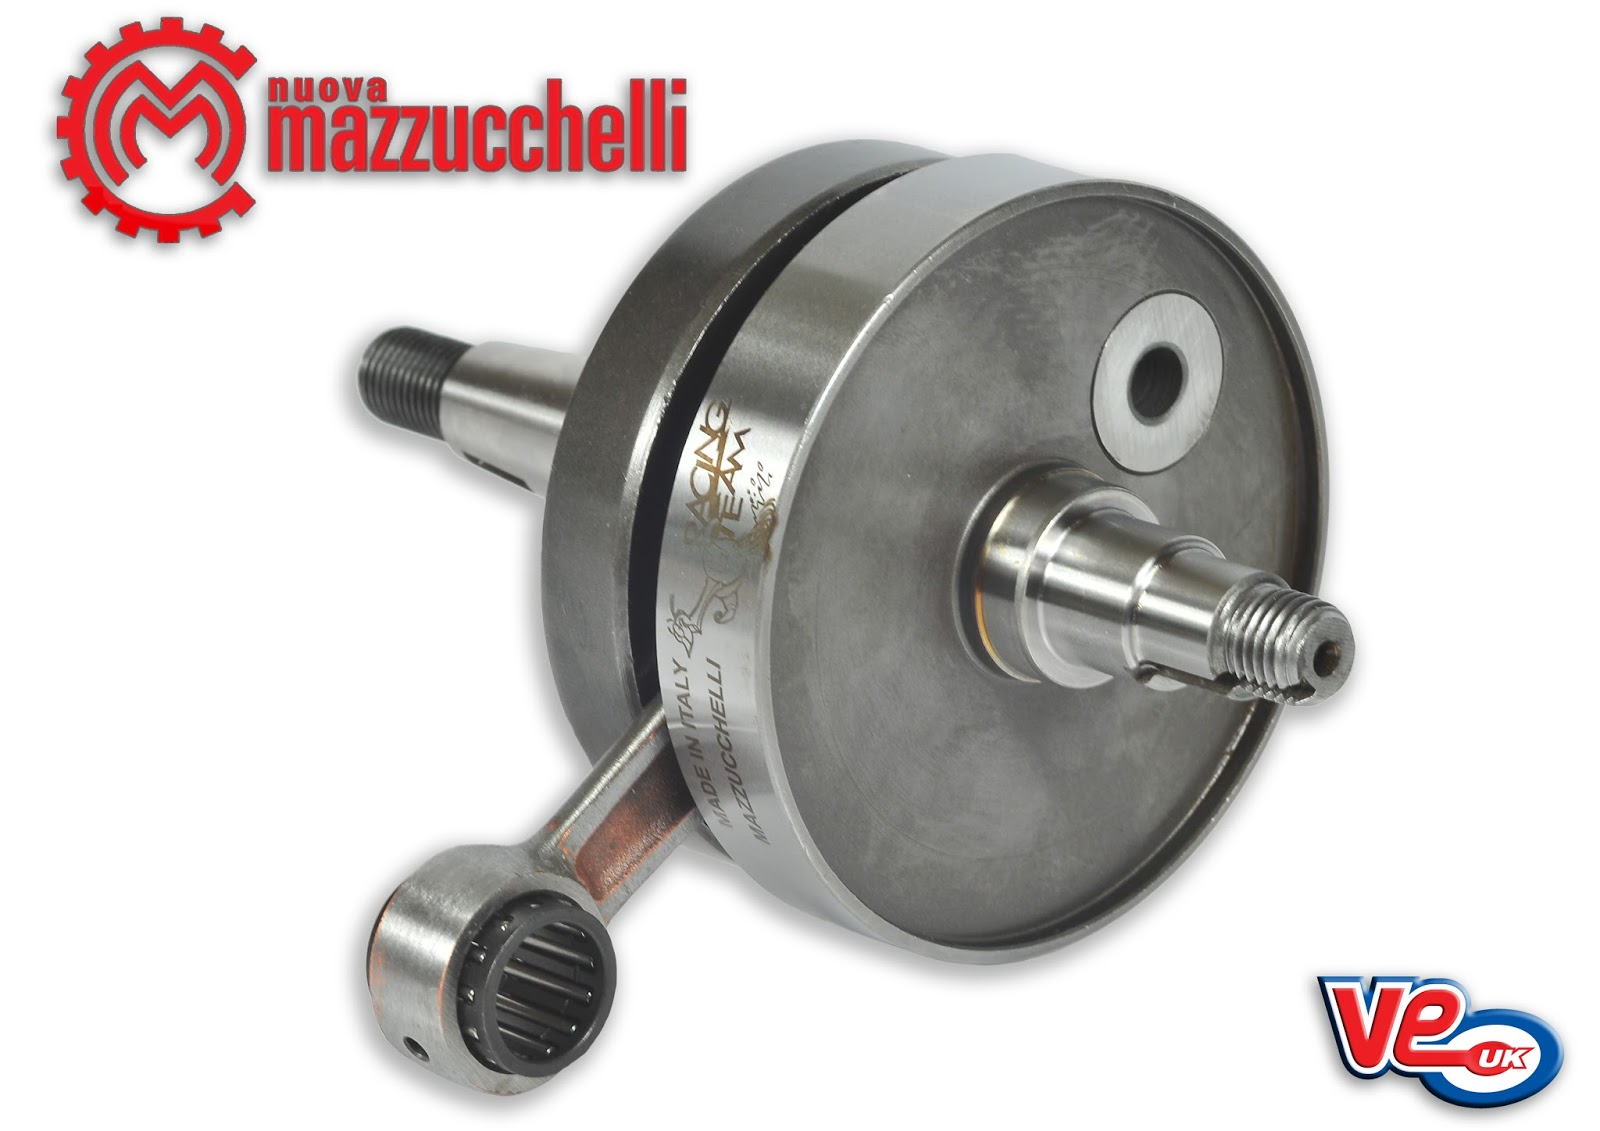 Mazzucchelli Reed Valve Crank for Vespa 90/100/125 Small Frame